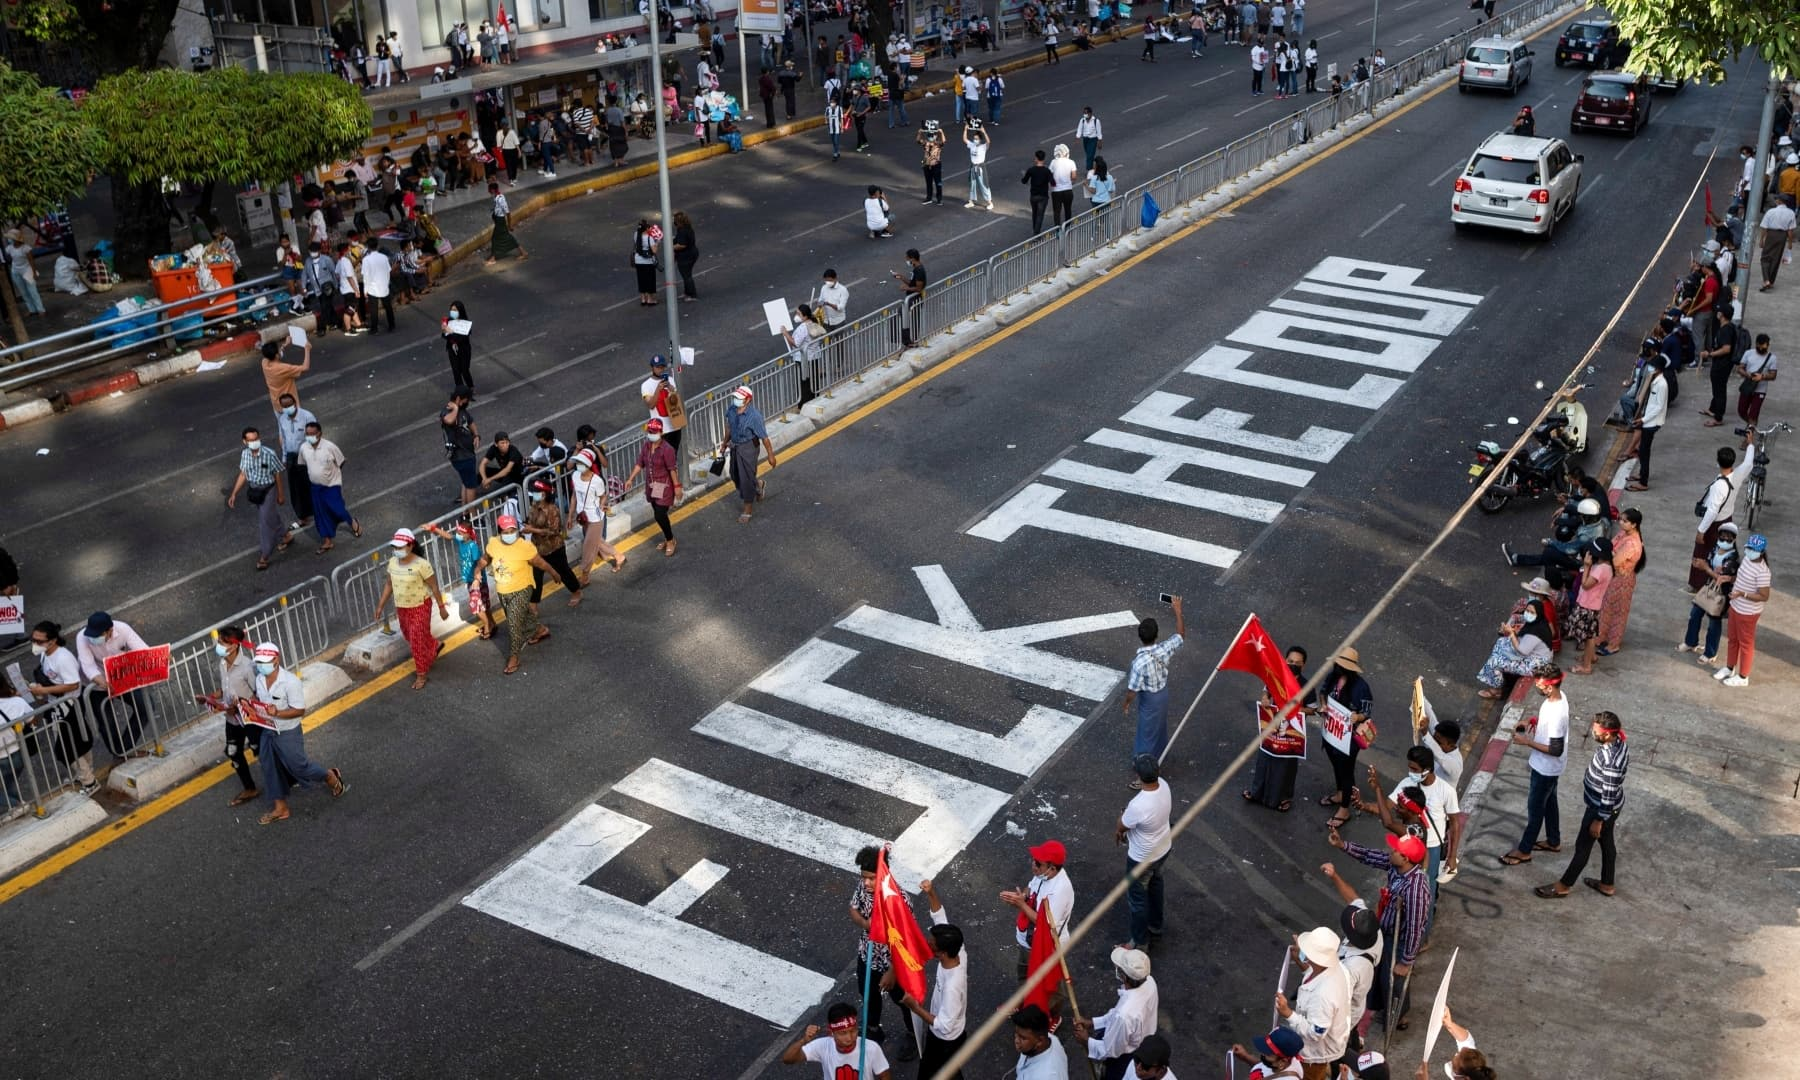 Demonstrators stand next to a writing on the street during a protest against the military coup in Yangon, Myanmar, February 17. — Reuters